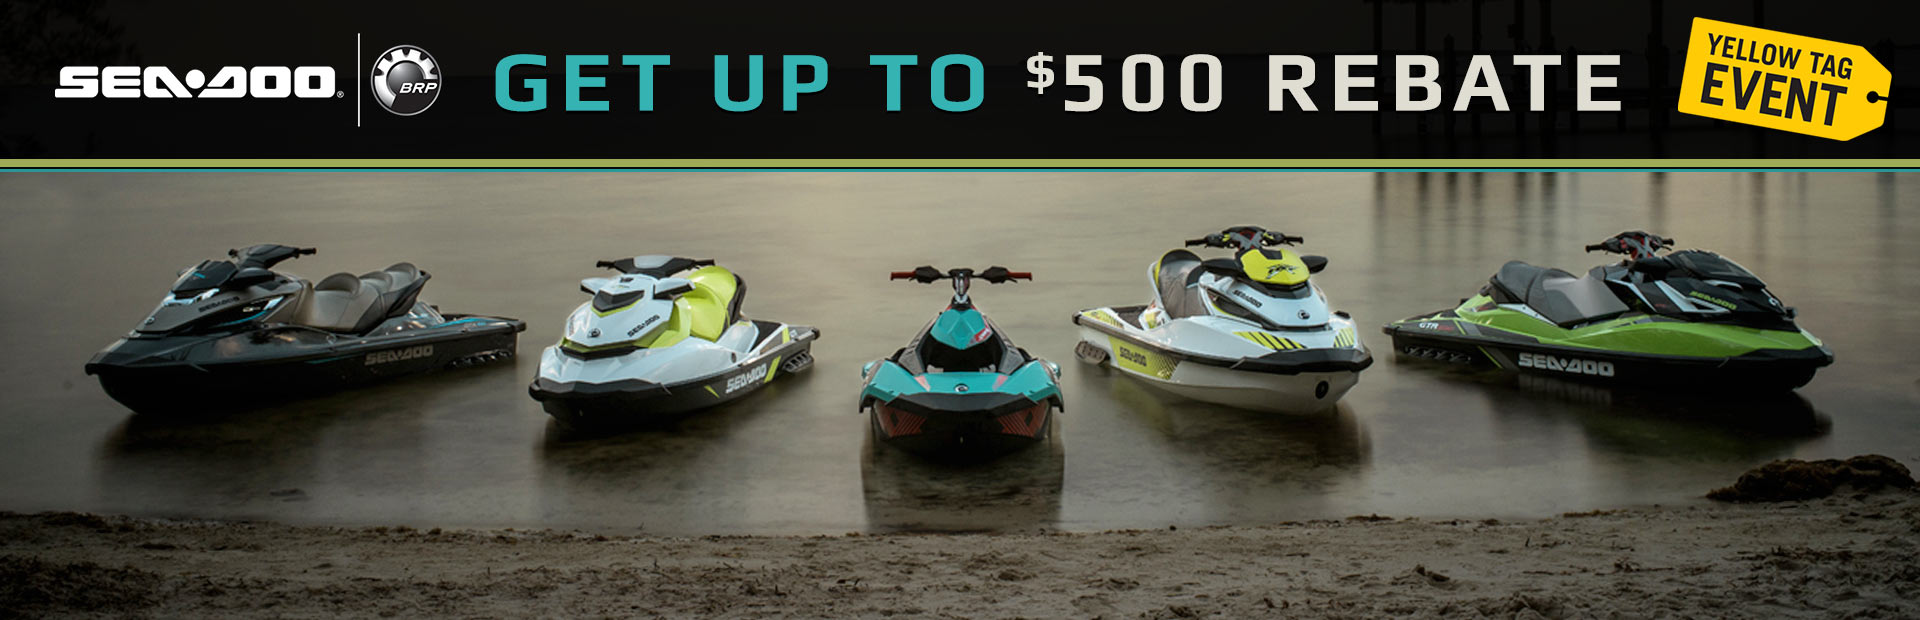 Sea-Doo: Get Up To $500 Rebate